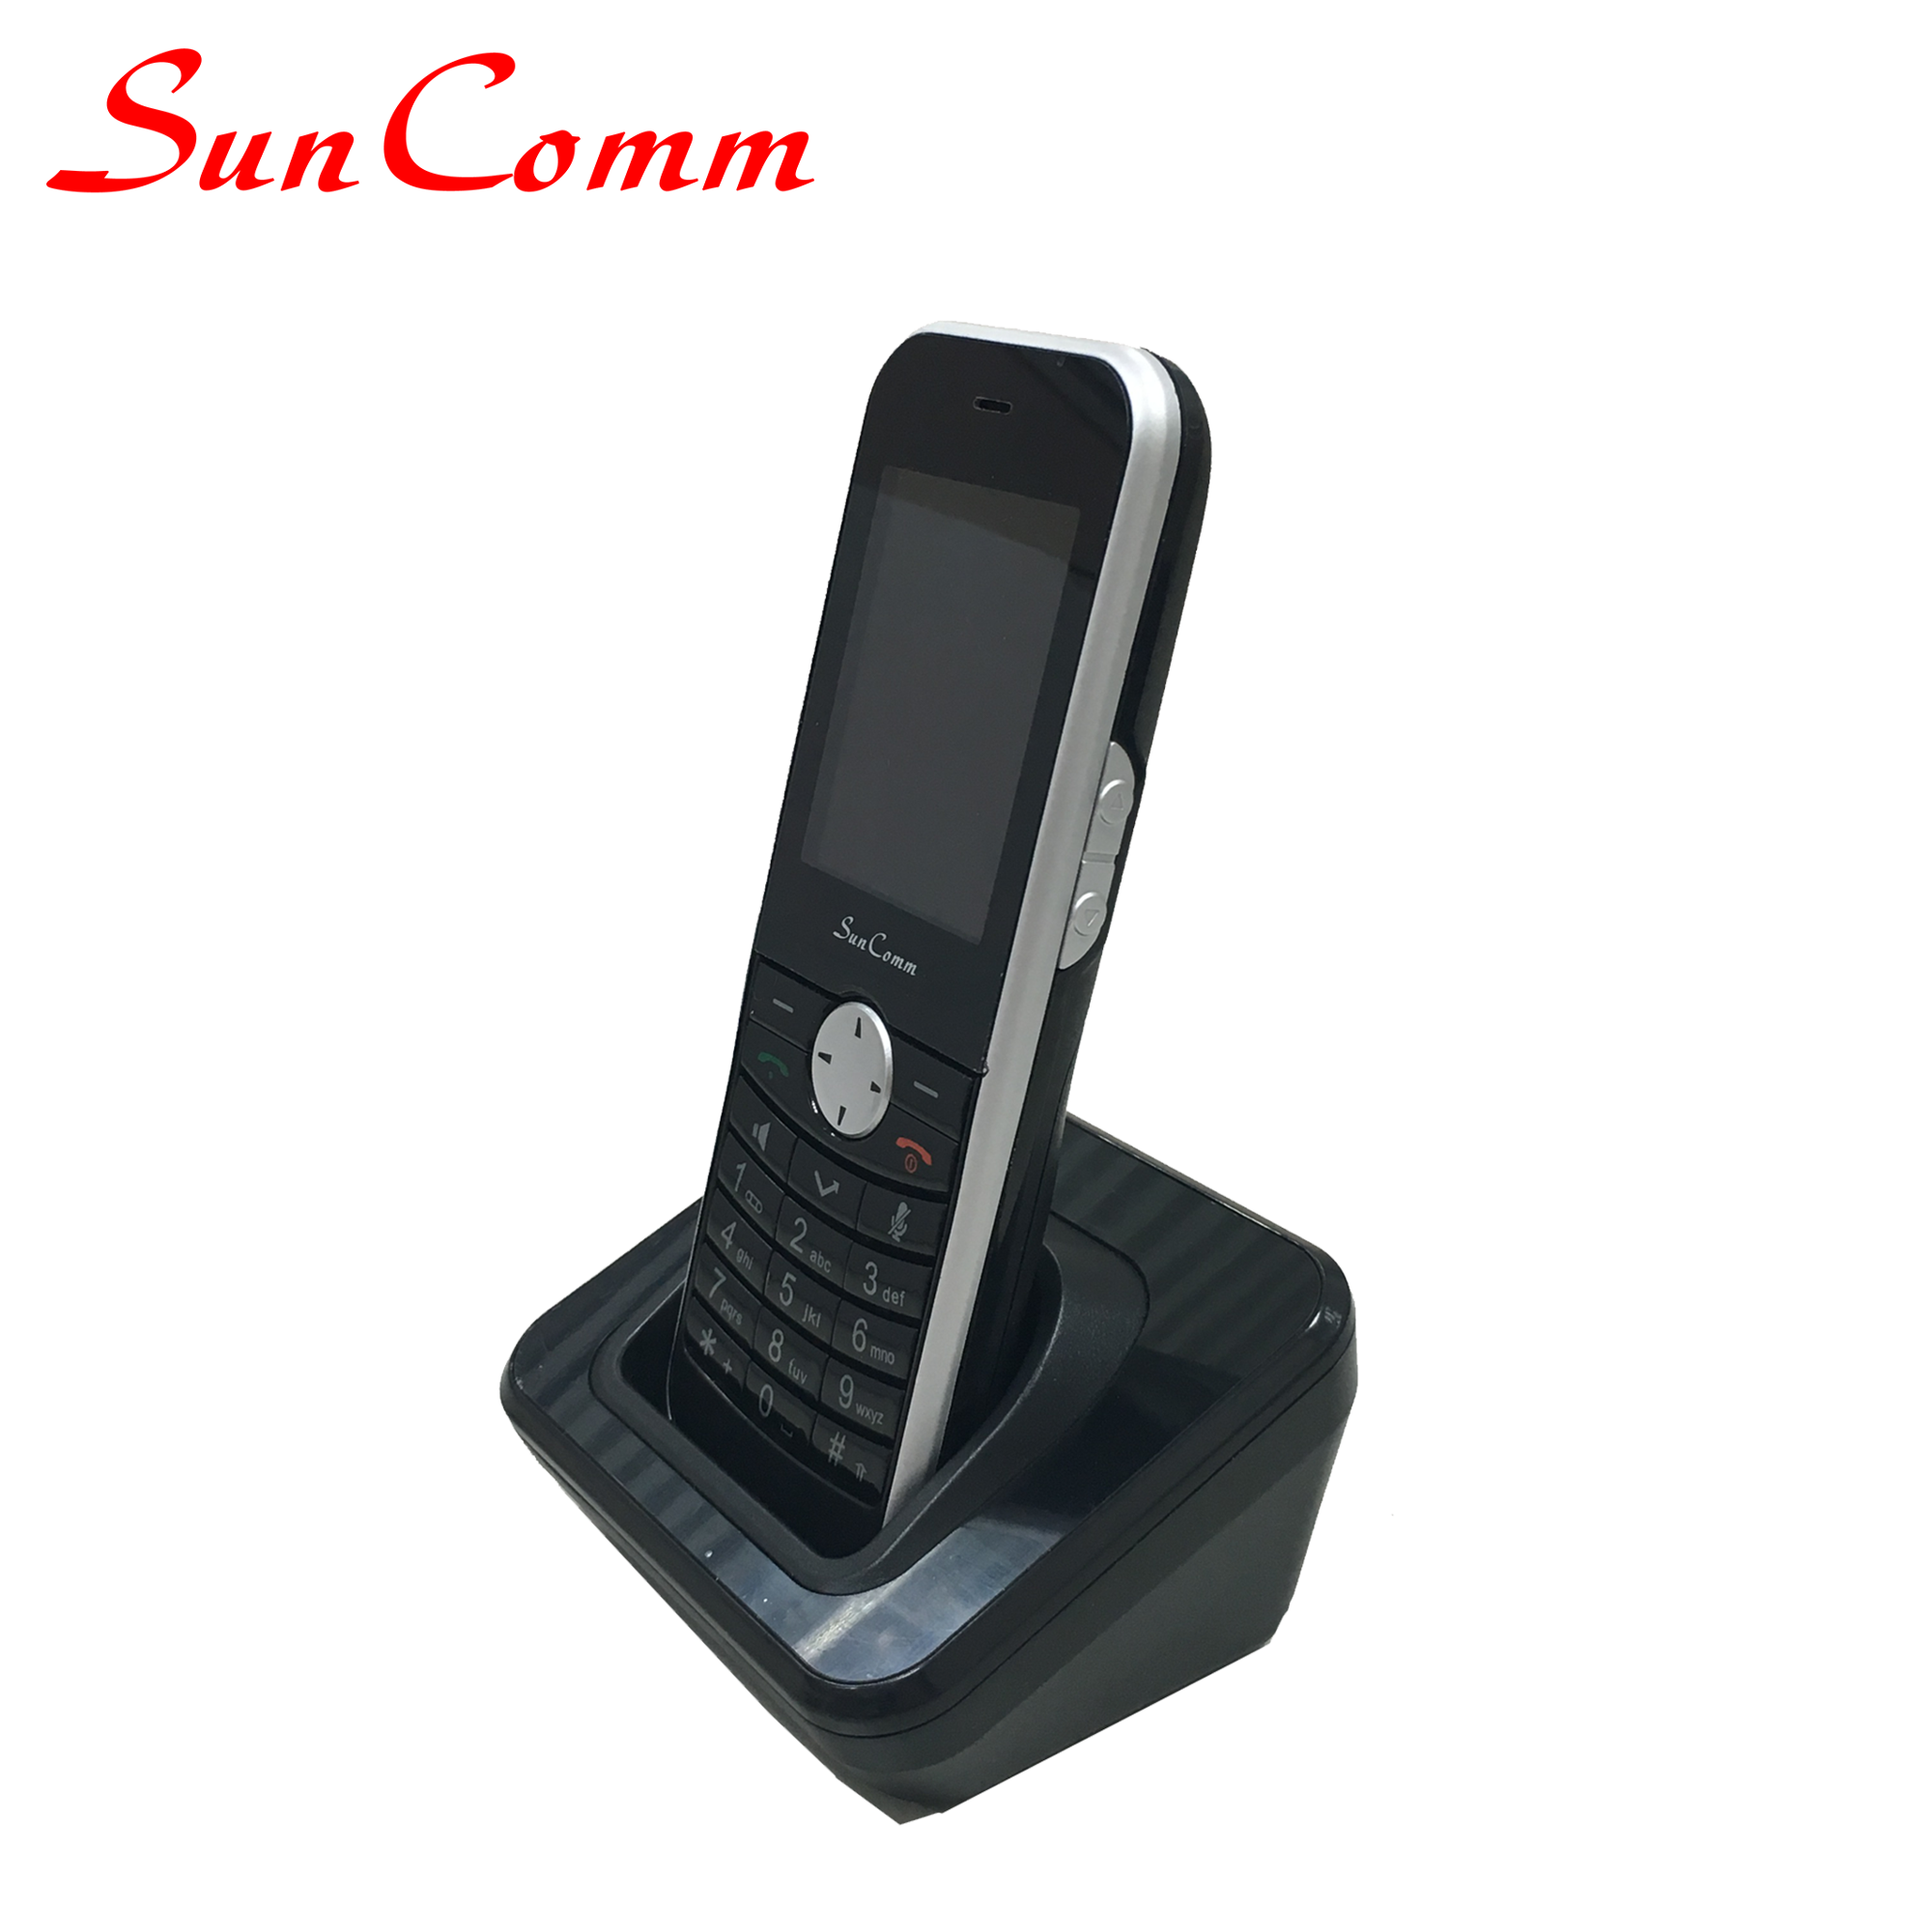 SC-9068-GH3G 3G WCDMA 900 2100MHz desktop fixed cordless telephone with SIM card interface